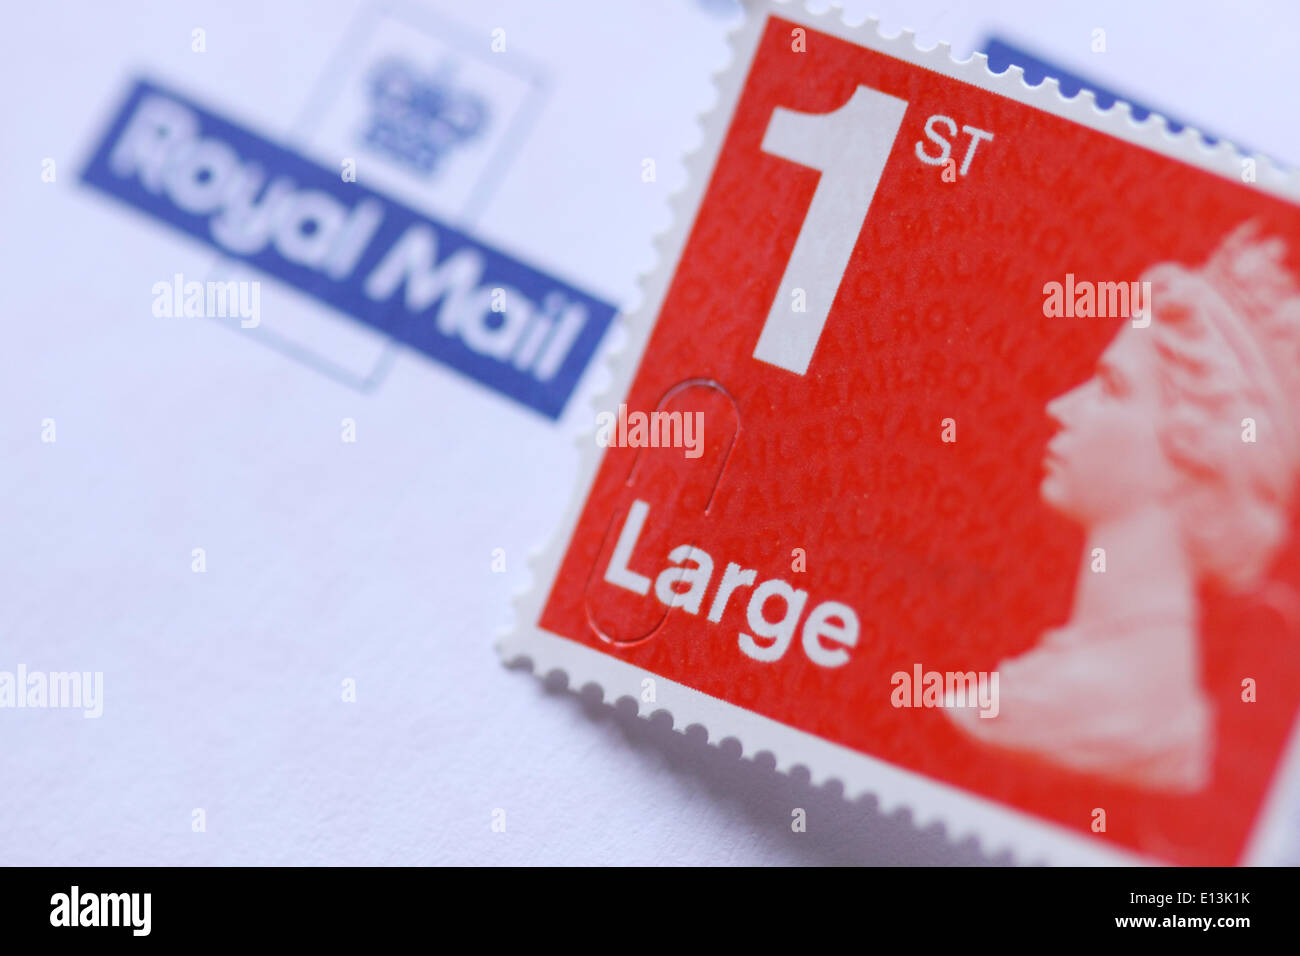 First Class Stamp Stock Photos & First Class Stamp Stock Images - Alamy